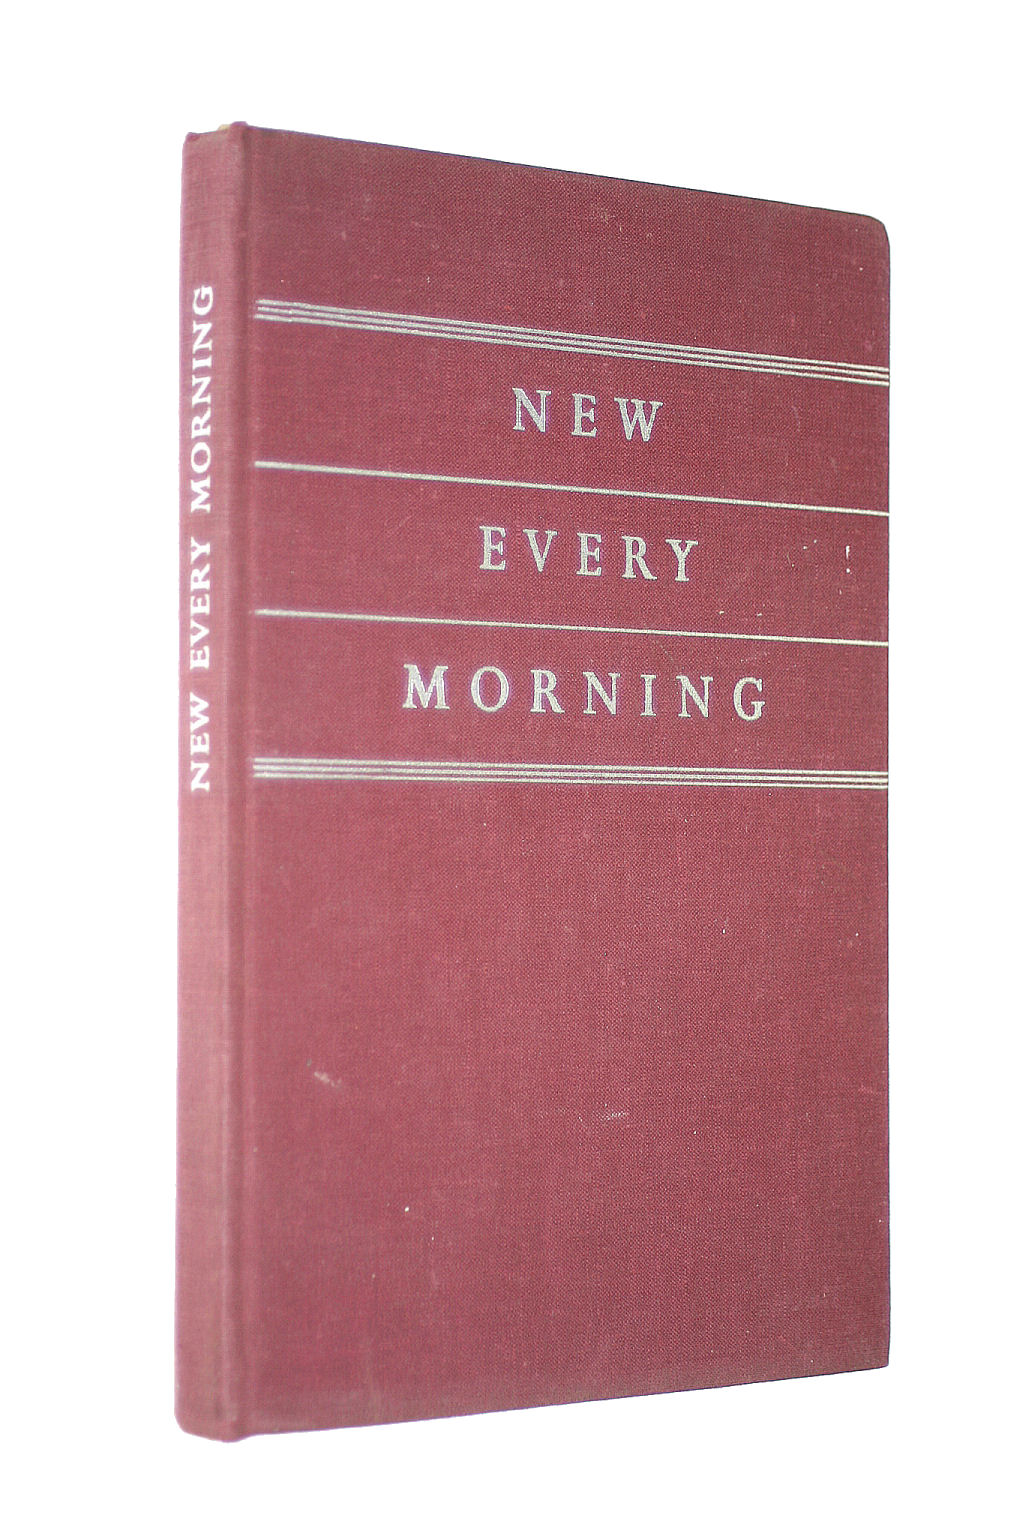 Image for New Every Morning (The Prayer Book Of The Daily Broadcast Service)